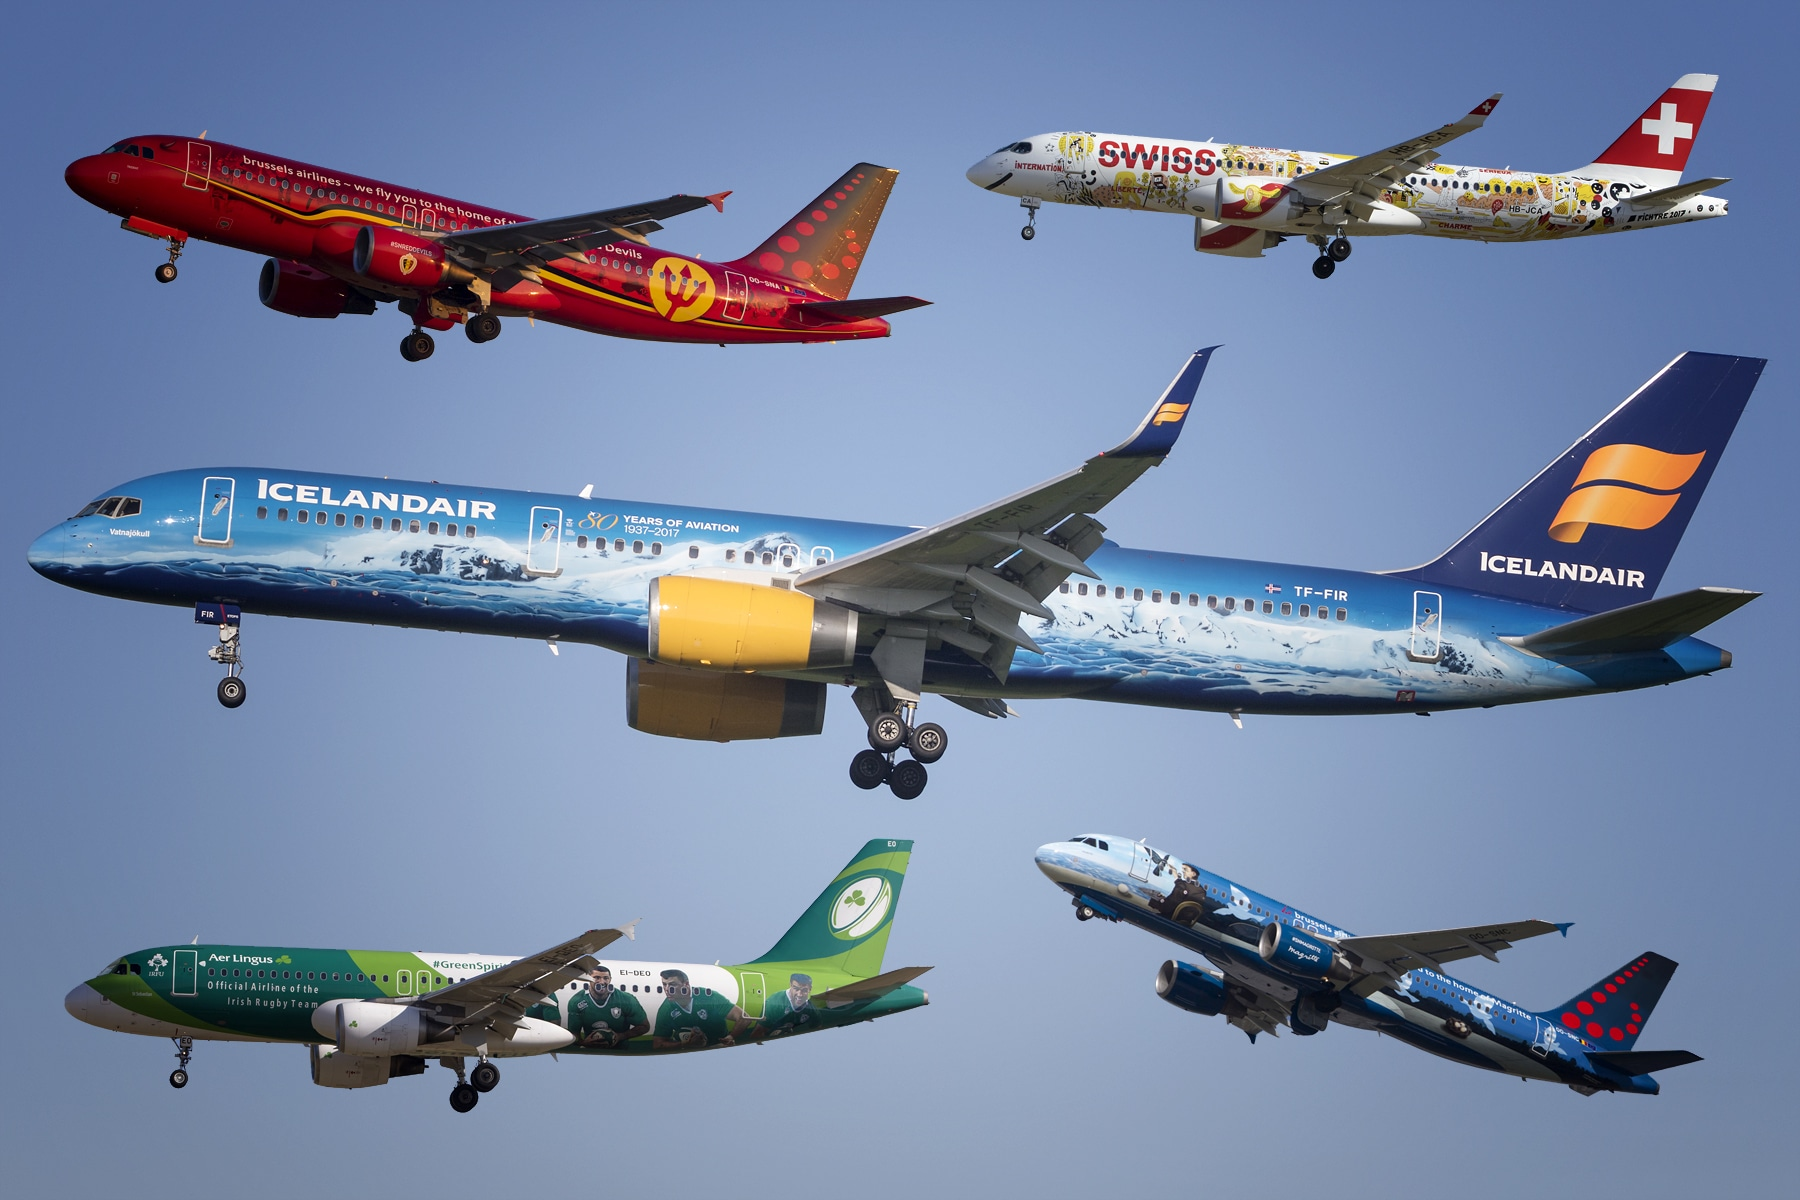 13 great aircraft liveries you can spot at Brussels Airport